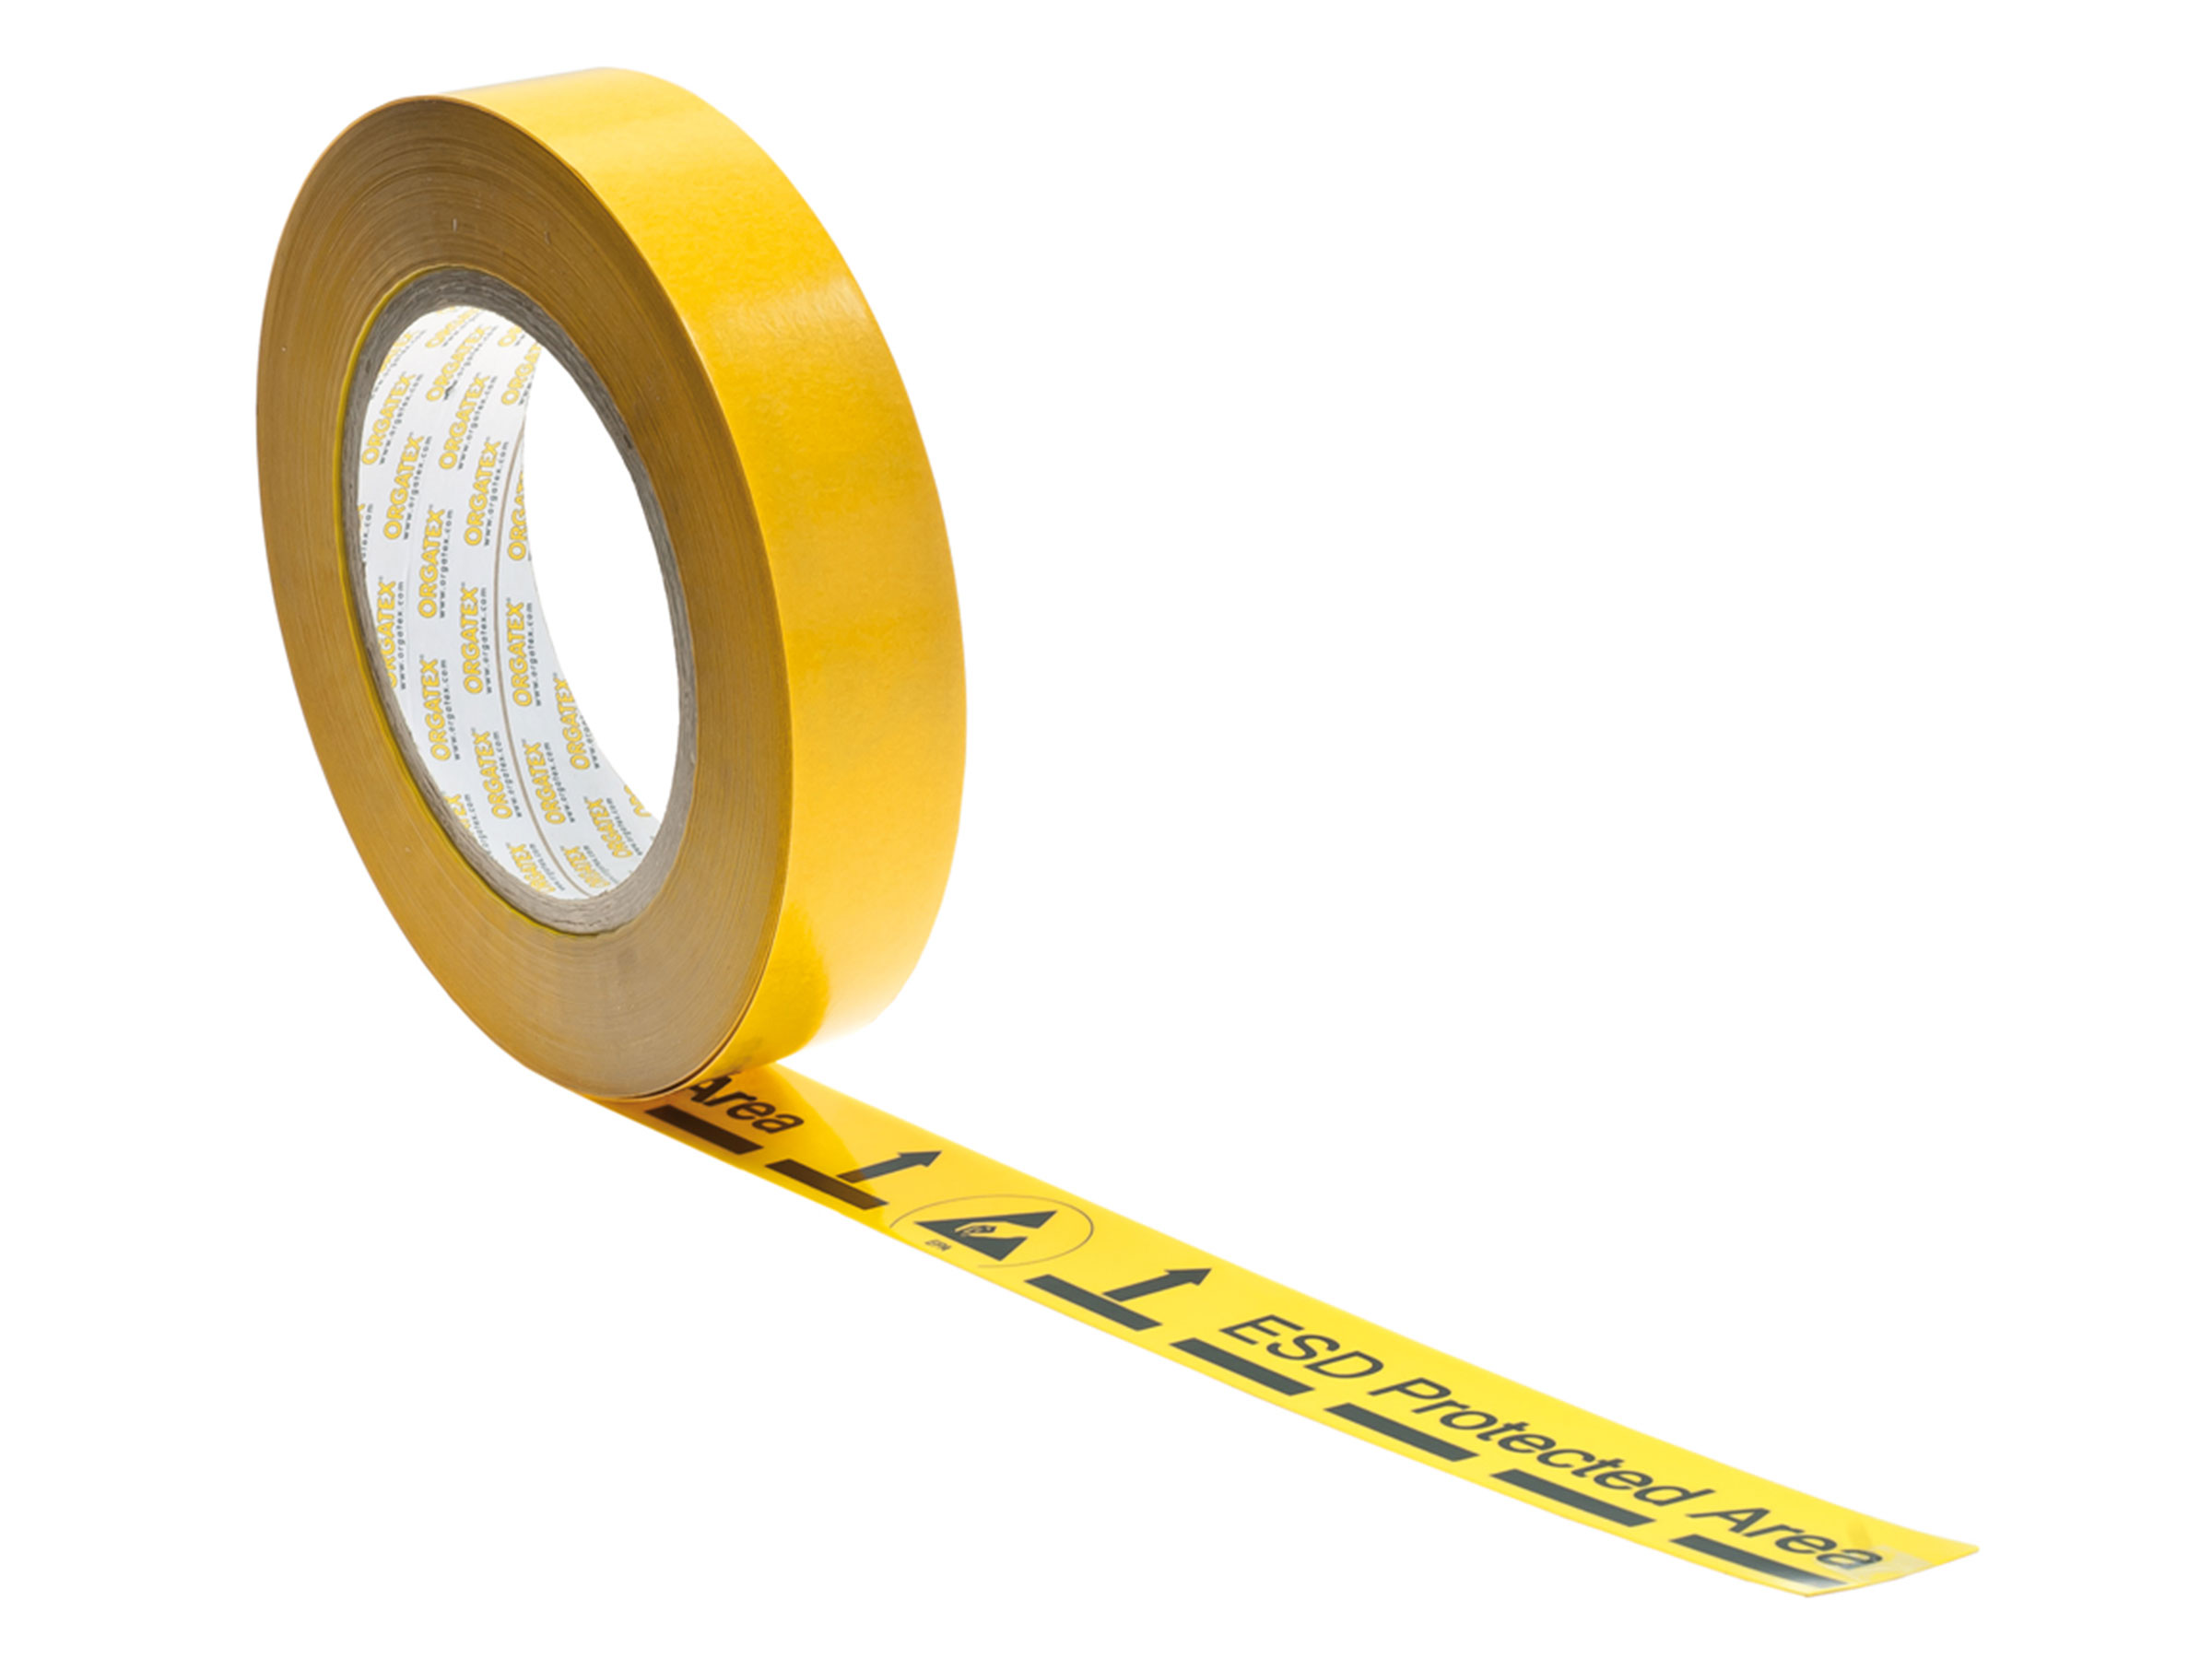 exporter floor floors marking manufacturer tape tapes extra